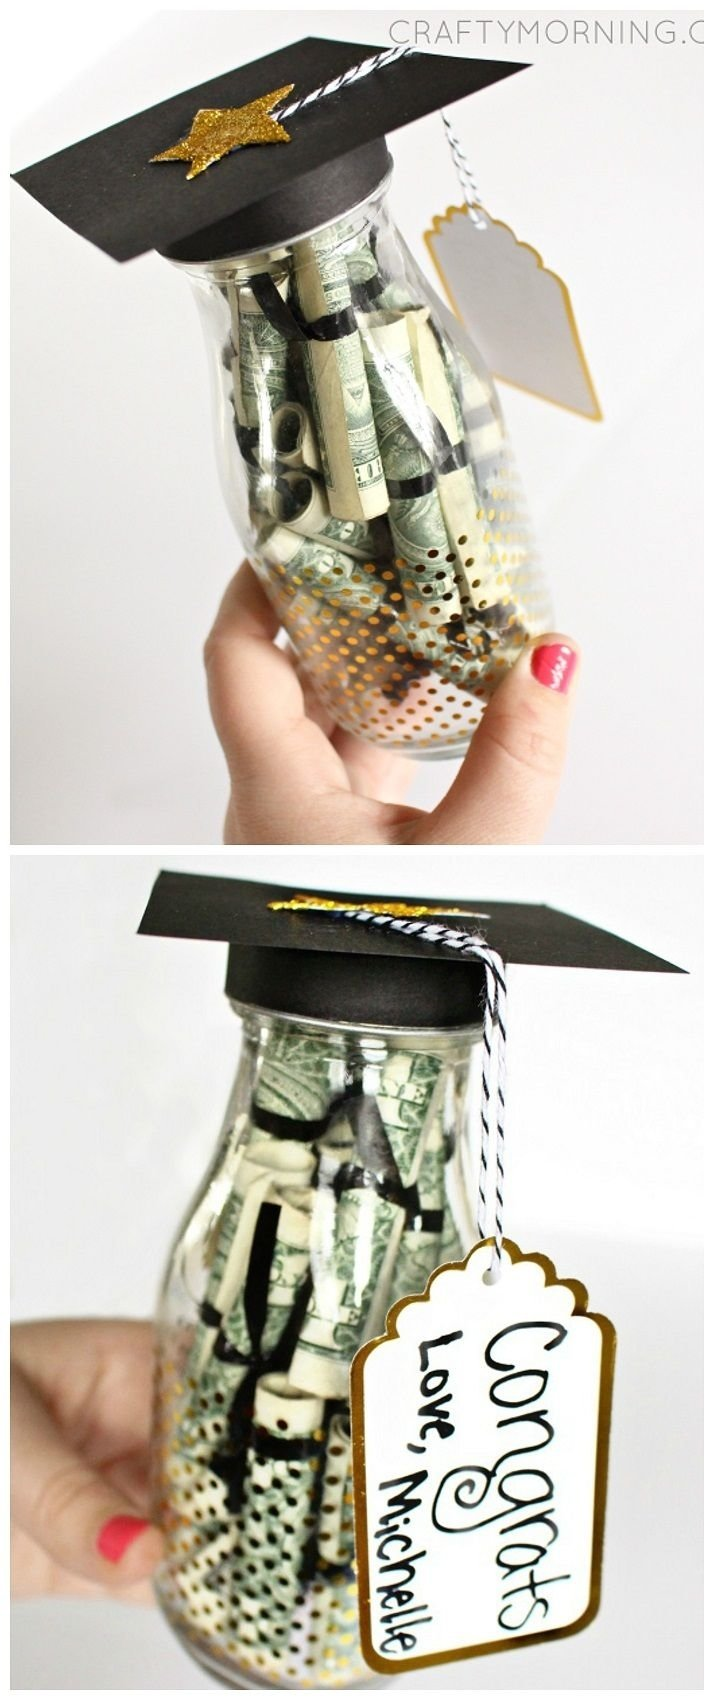 10 Best Graduation Gift Ideas For Her Masters Degree 270 best graduation gift ideas images on pinterest caps hats